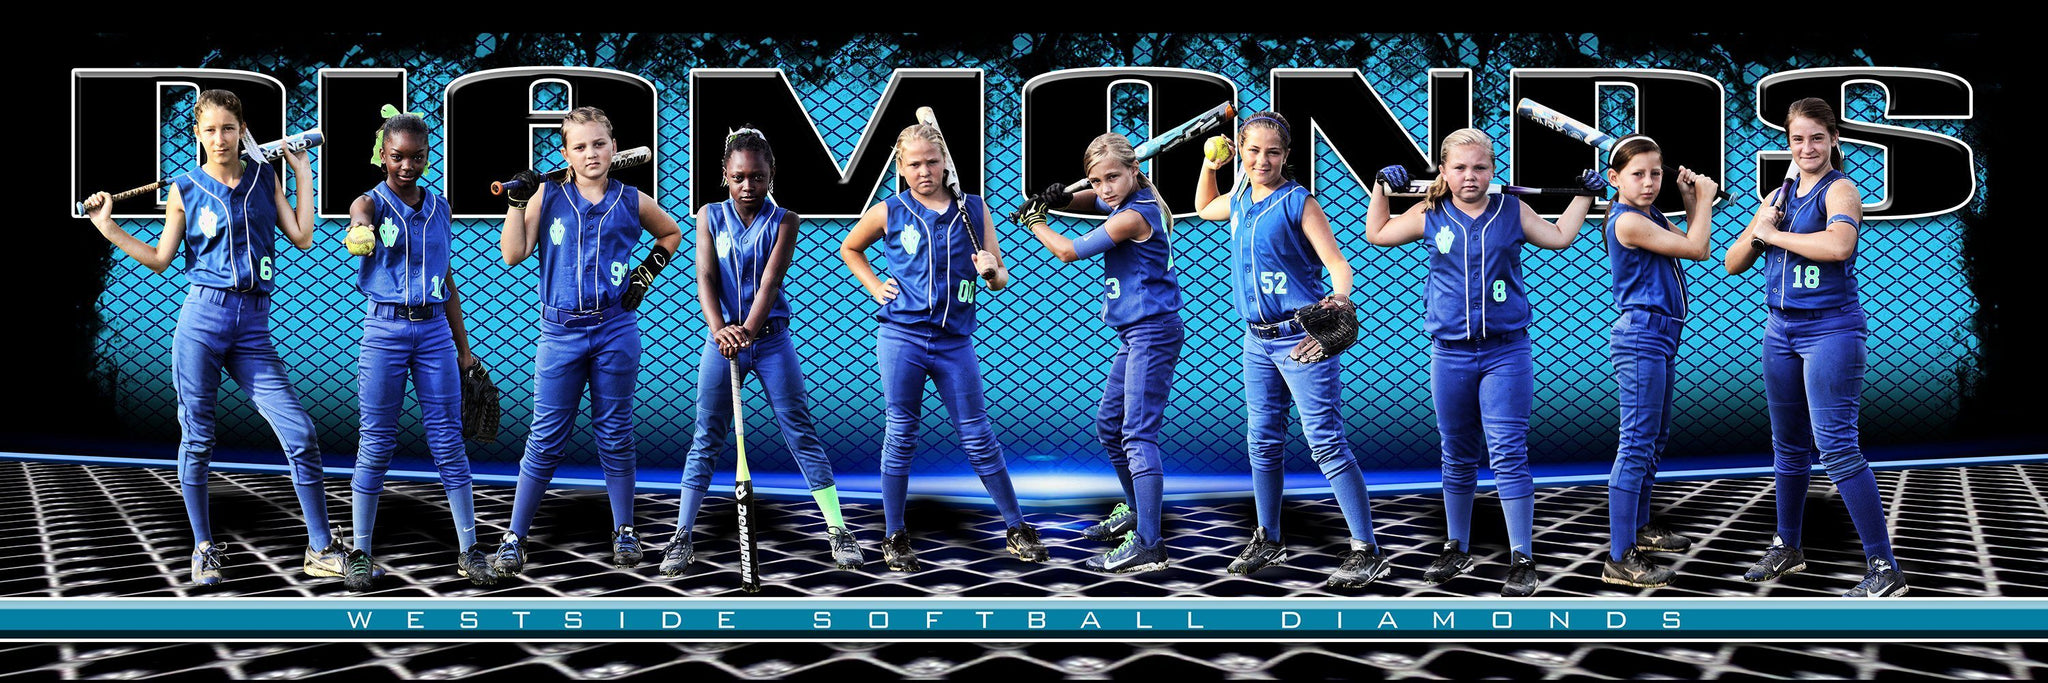 Grill v.4ex - Team Panoramic Downloadable Template Photo Solutions PSMGraphix